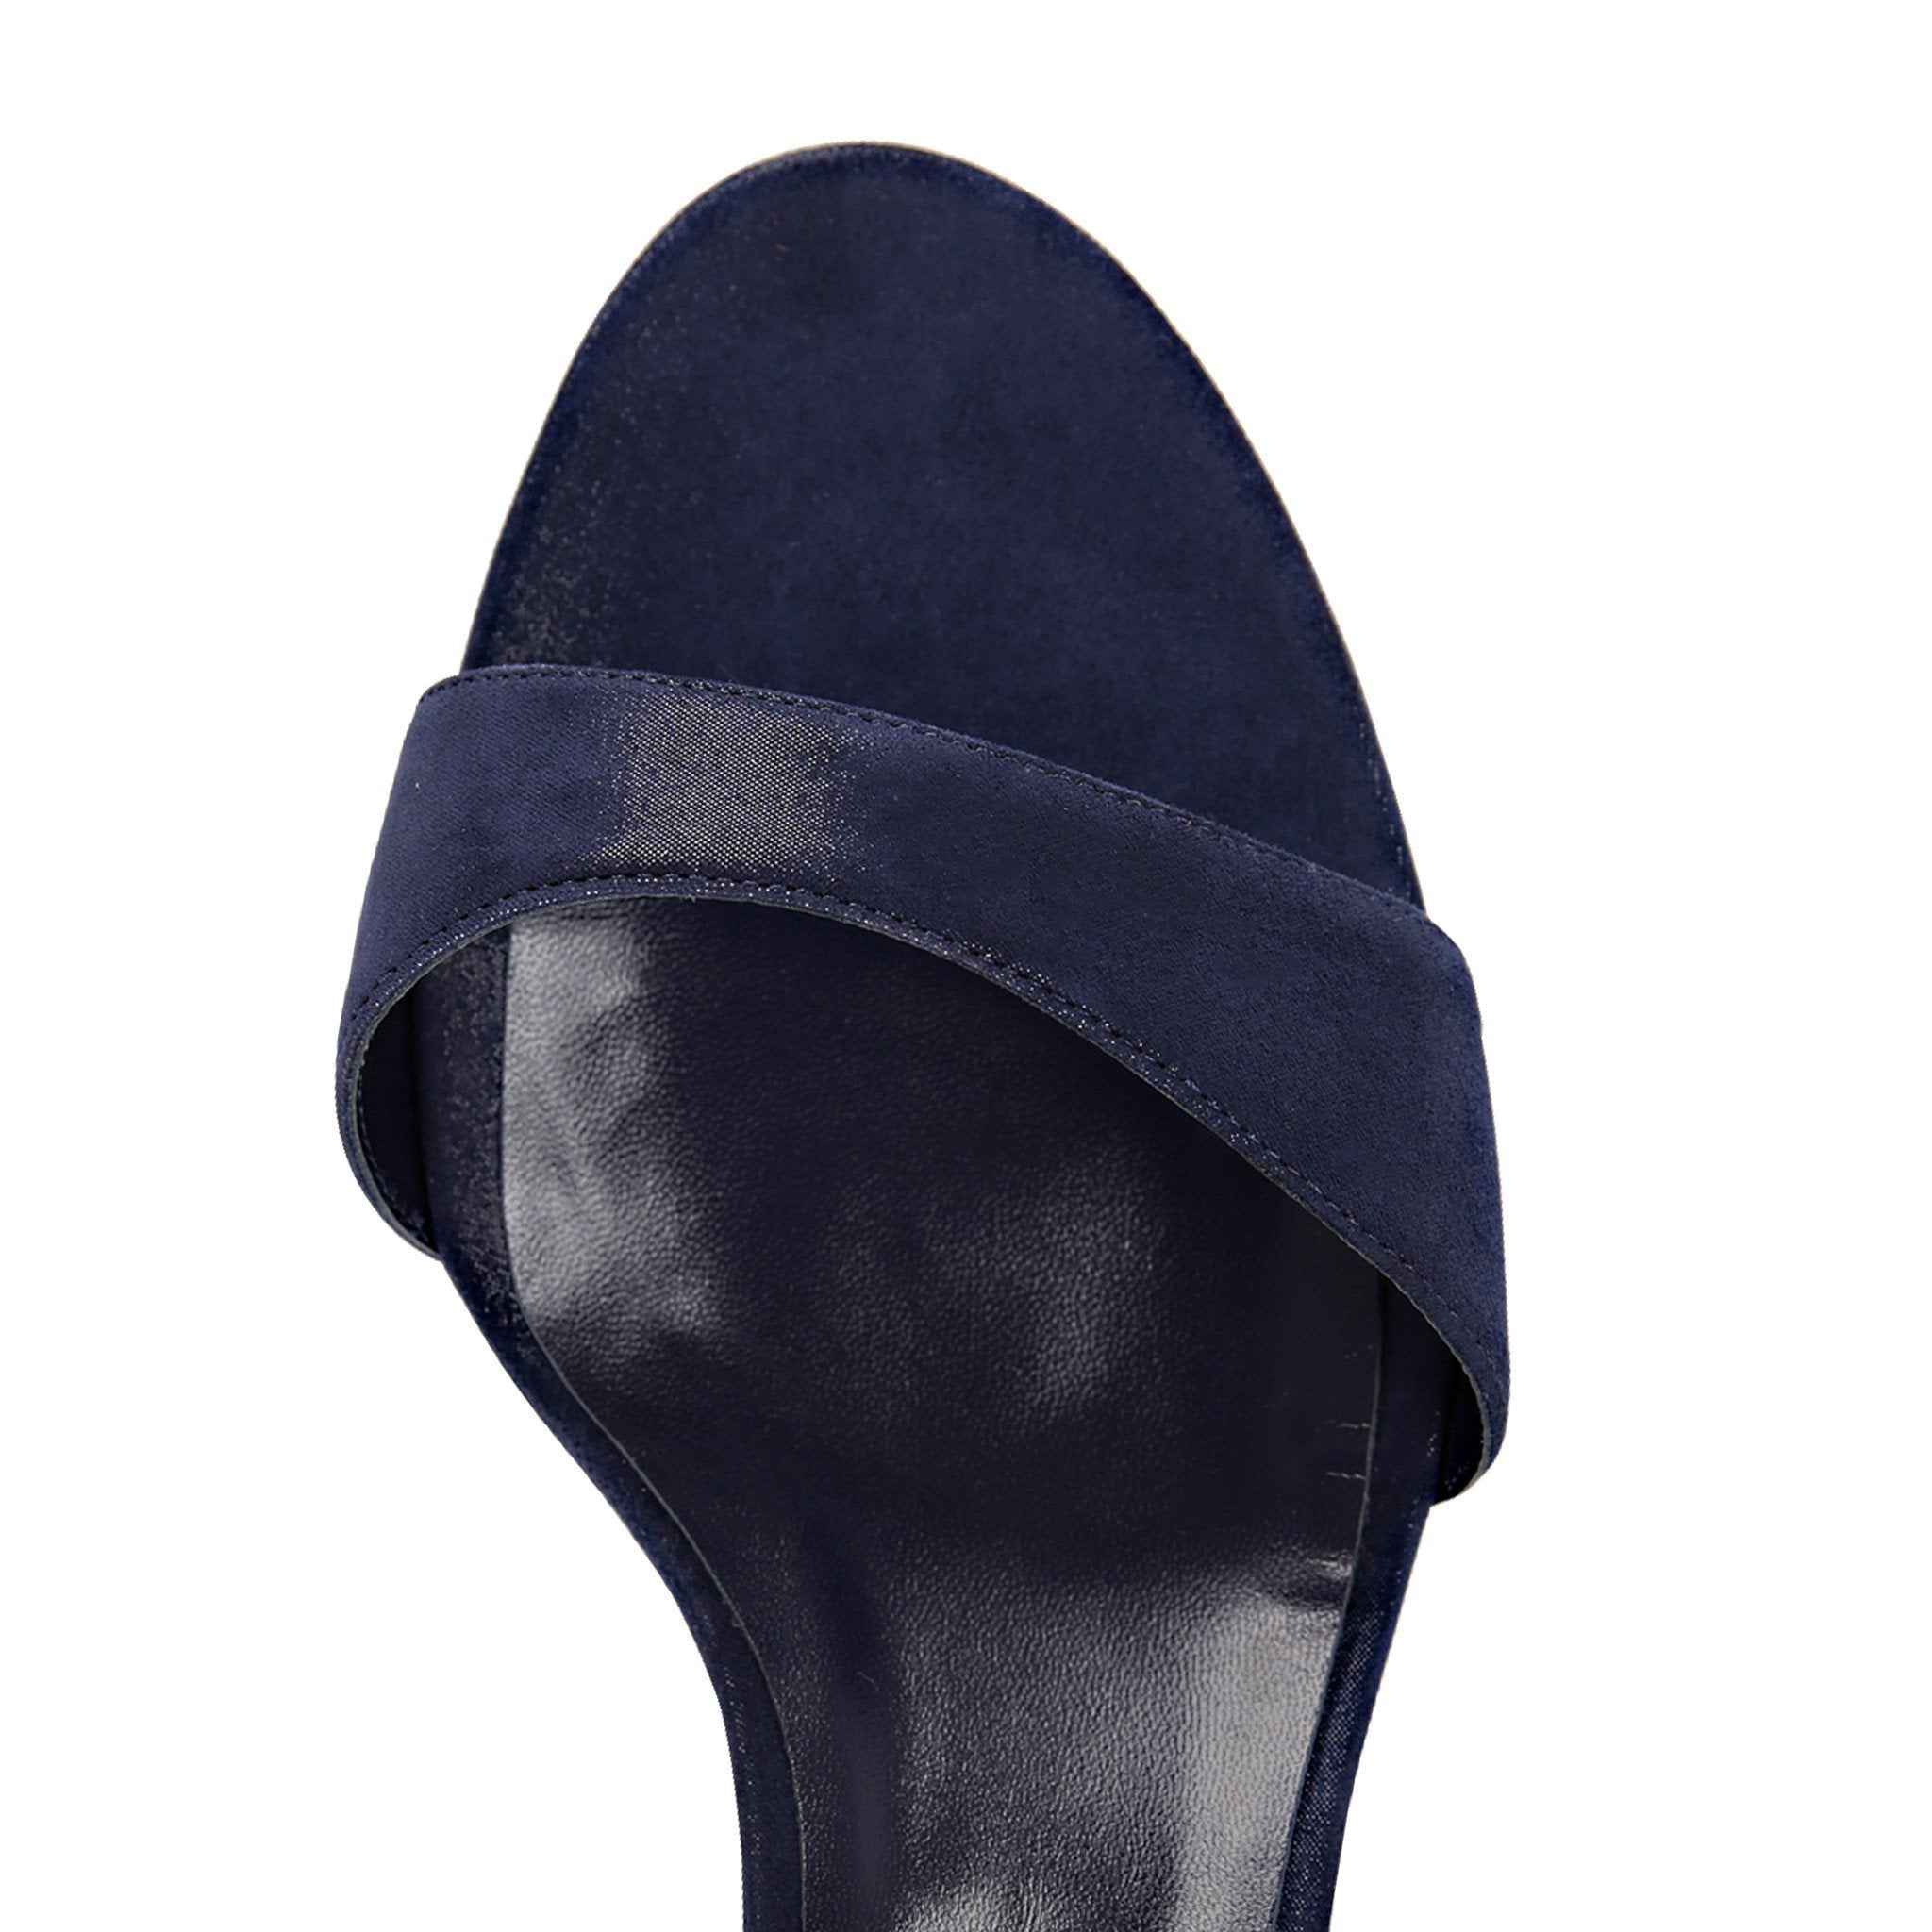 MODENA - Hydra Midnight, VIAJIYU - Women's Hand Made Sustainable Luxury Shoes. Made in Italy. Made to Order.